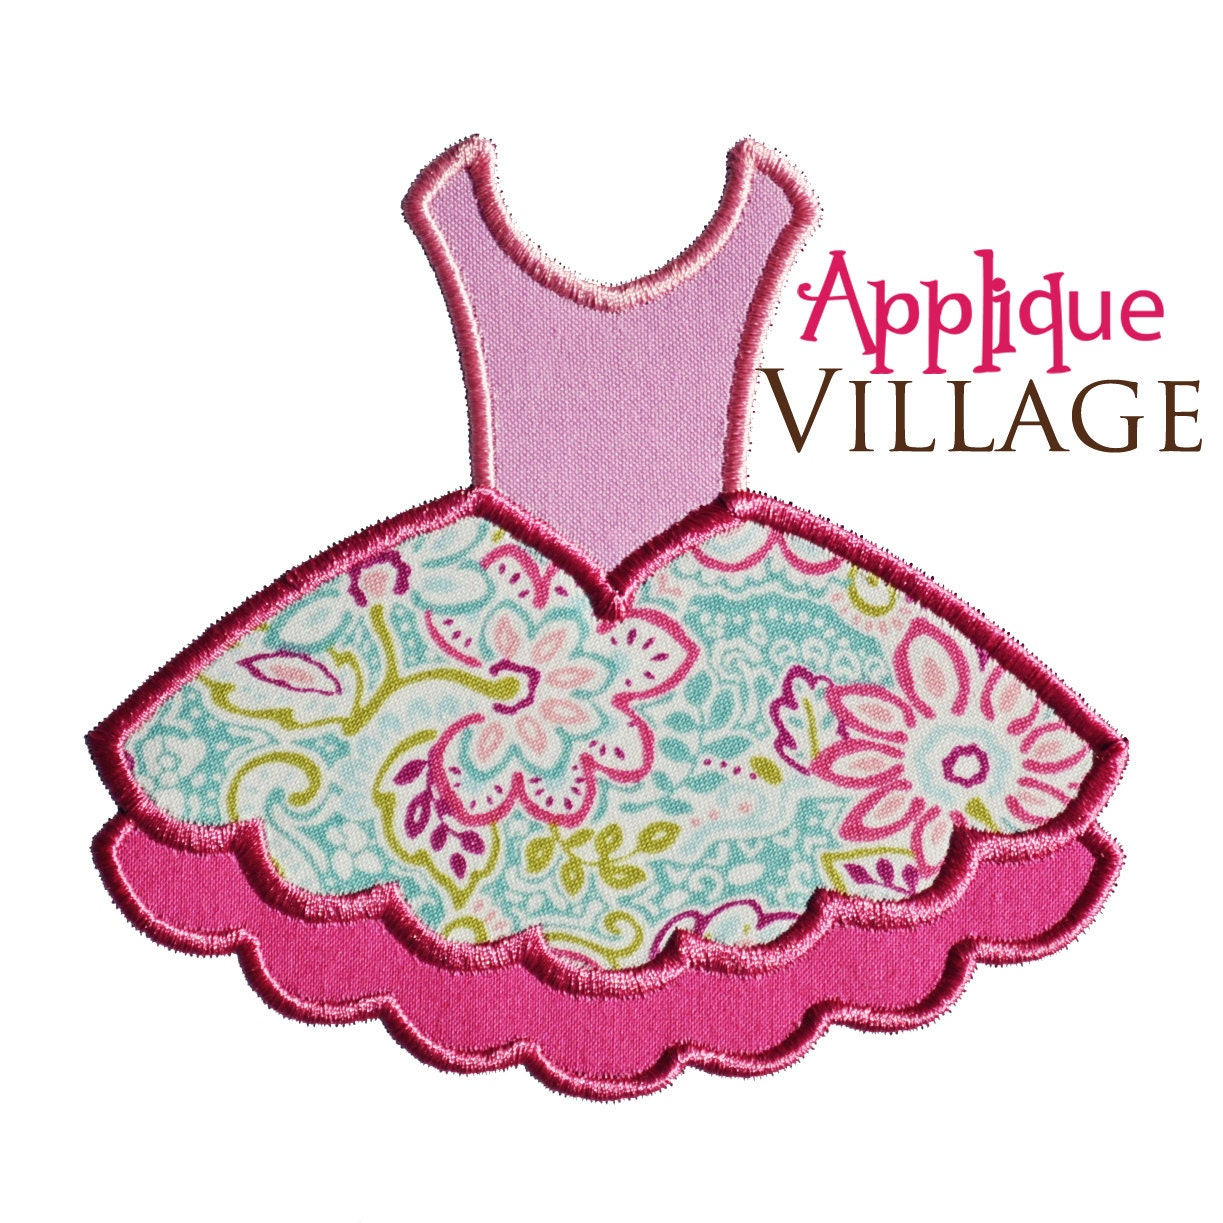 Ballet tutu applique embroidery design